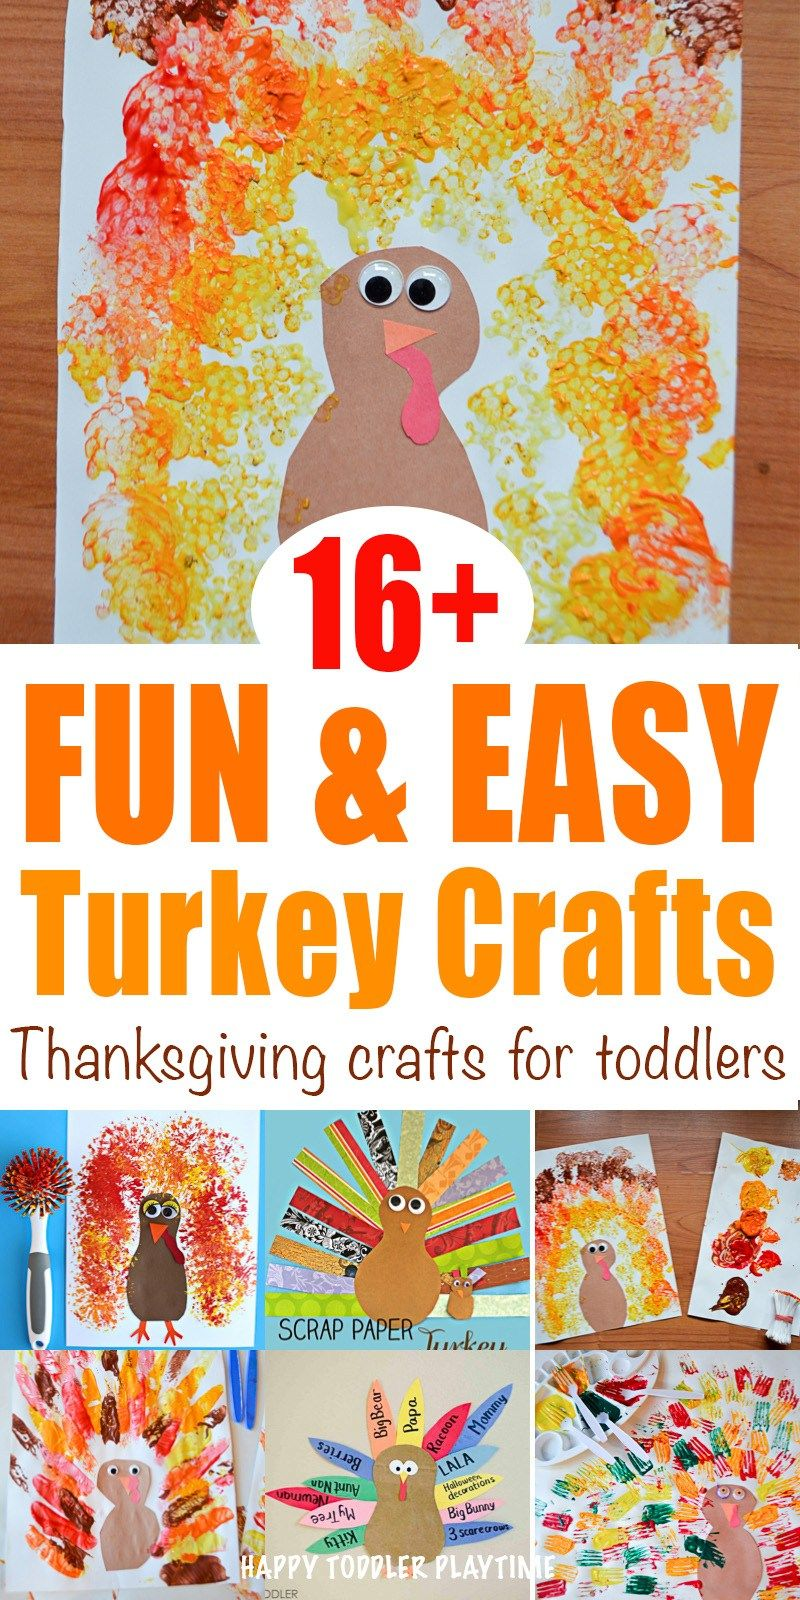 20+ Fun & Easy Thanksgiving Crafts – HAPPY TODDLER PLAYTIME